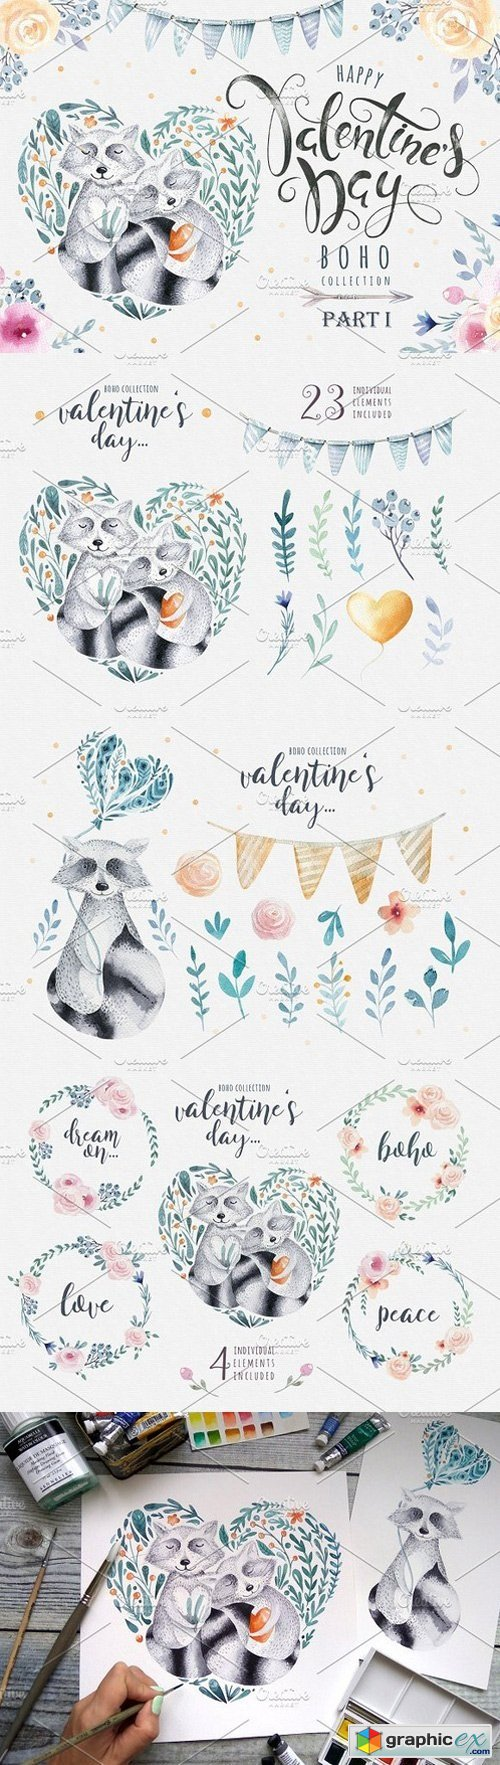 Valentine's Day with raccoons